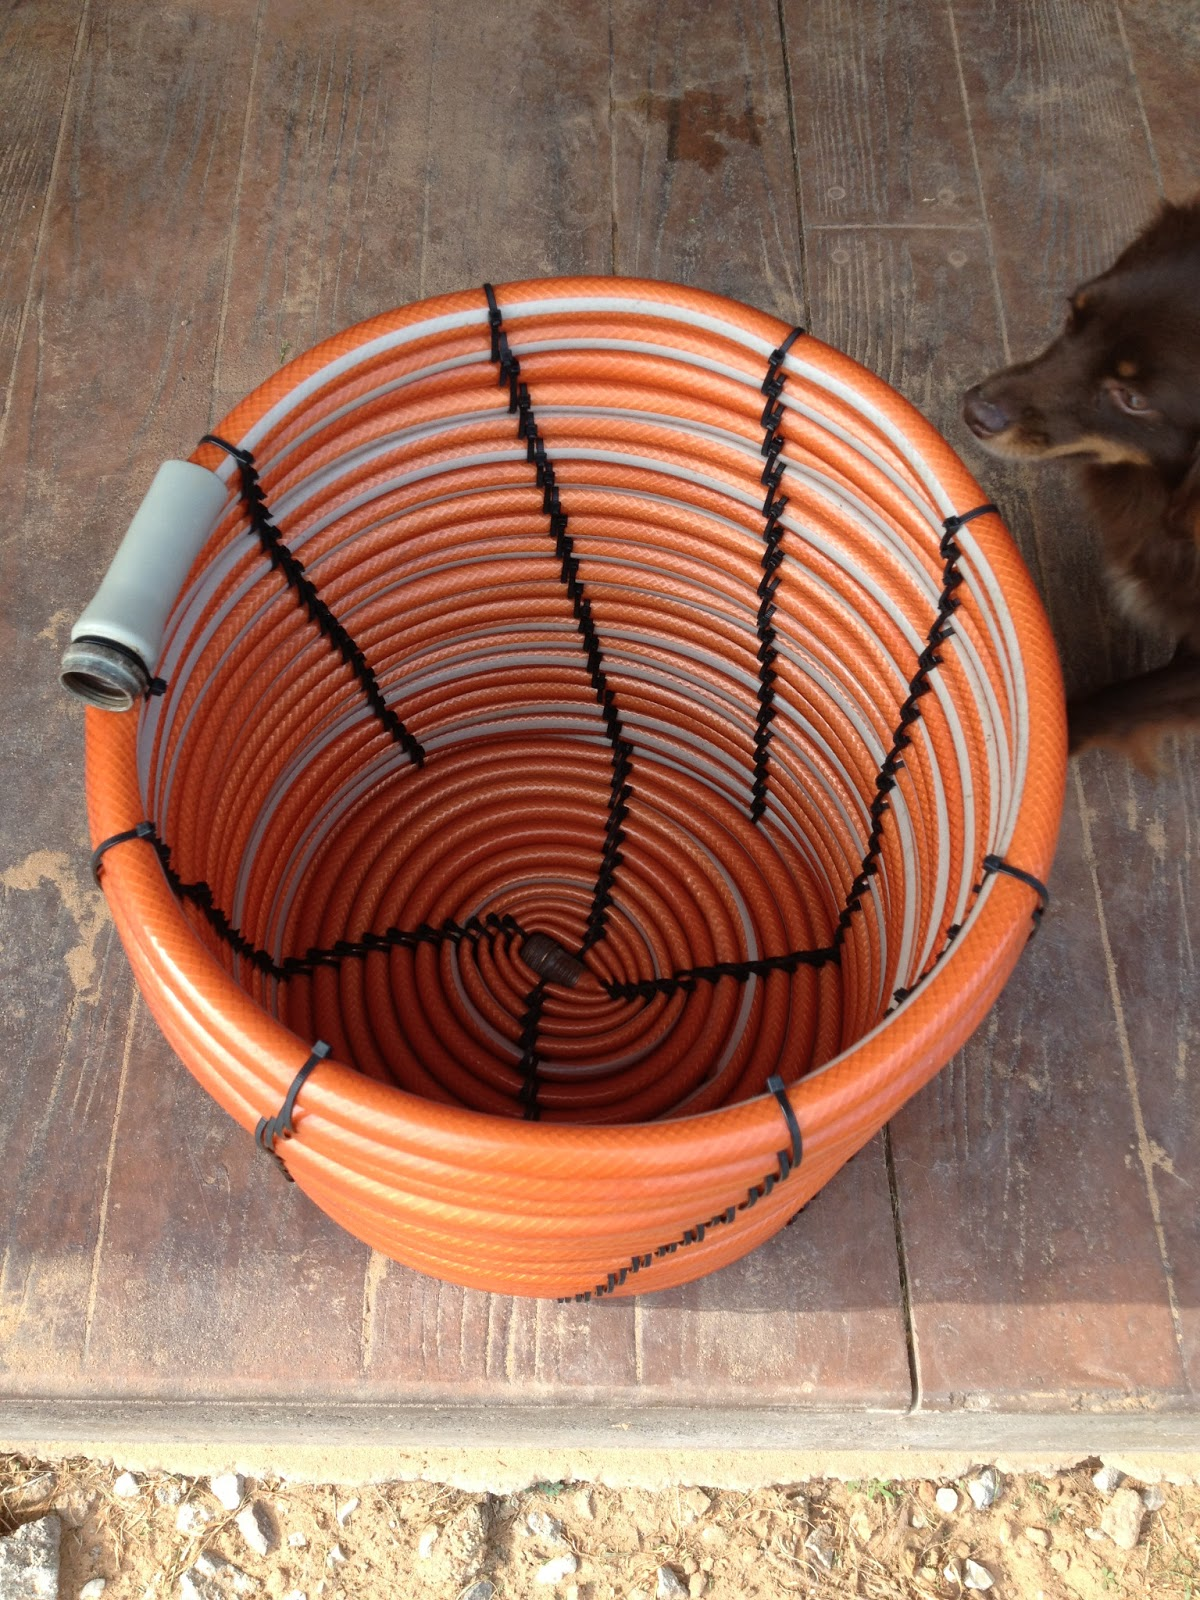 Basket from a Garden Hose